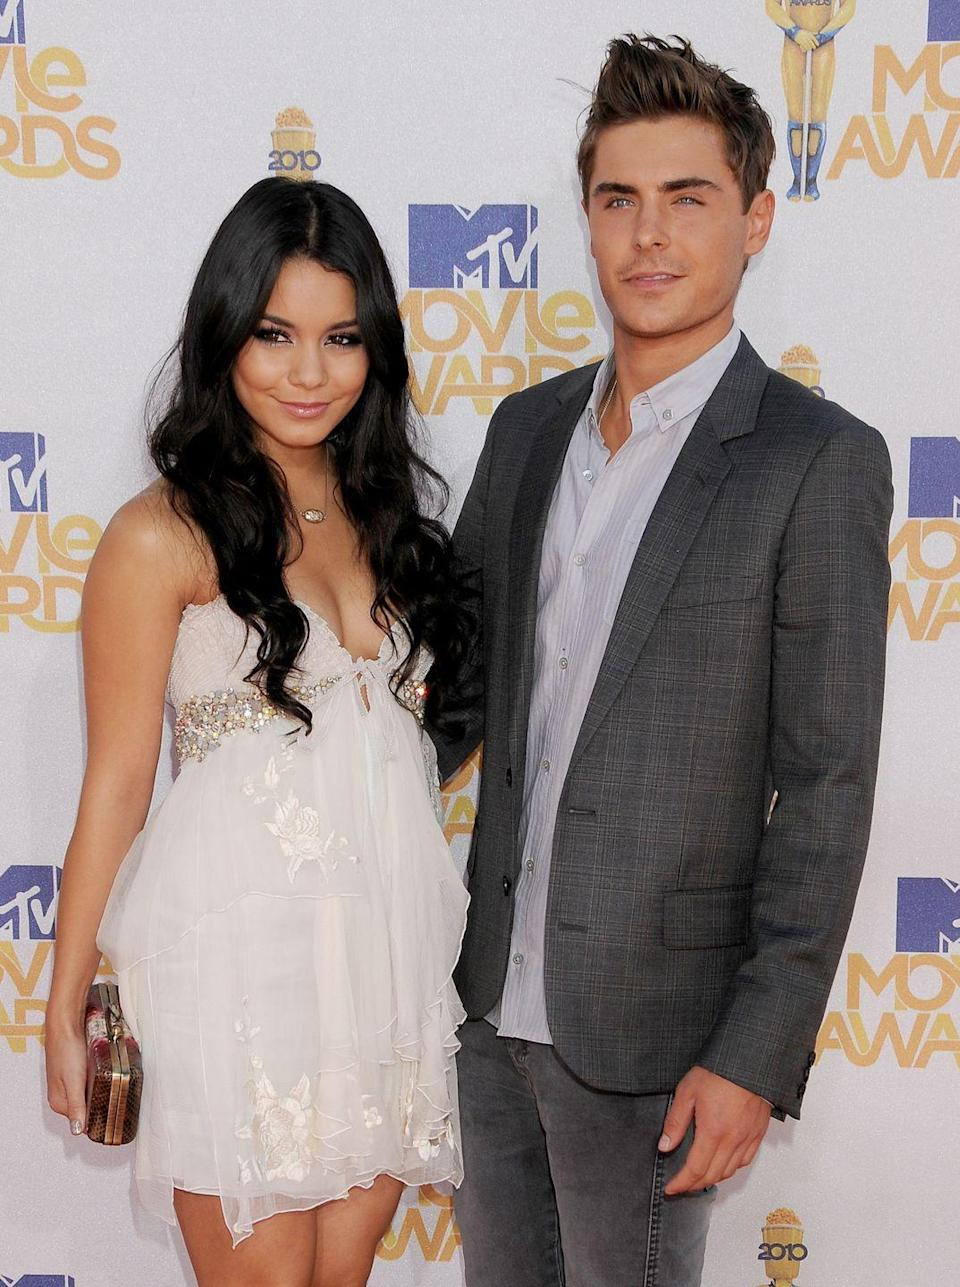 """<p>It really seemed like a Disney dream come true when the stars of <em>High School Musical </em>started dating IRL. But when t<a href=""""https://www.seventeen.com/celebrity/celebrity-couples/a26719613/zac-efron-love-life/"""" rel=""""nofollow noopener"""" target=""""_blank"""" data-ylk=""""slk:hey broke up not too long after the third and final movie,"""" class=""""link rapid-noclick-resp"""">hey broke up not too long after the third and final movie,</a> they definitely raised a few eyebrows<em>, </em>leading many to think they were simply together to promote the films.</p>"""